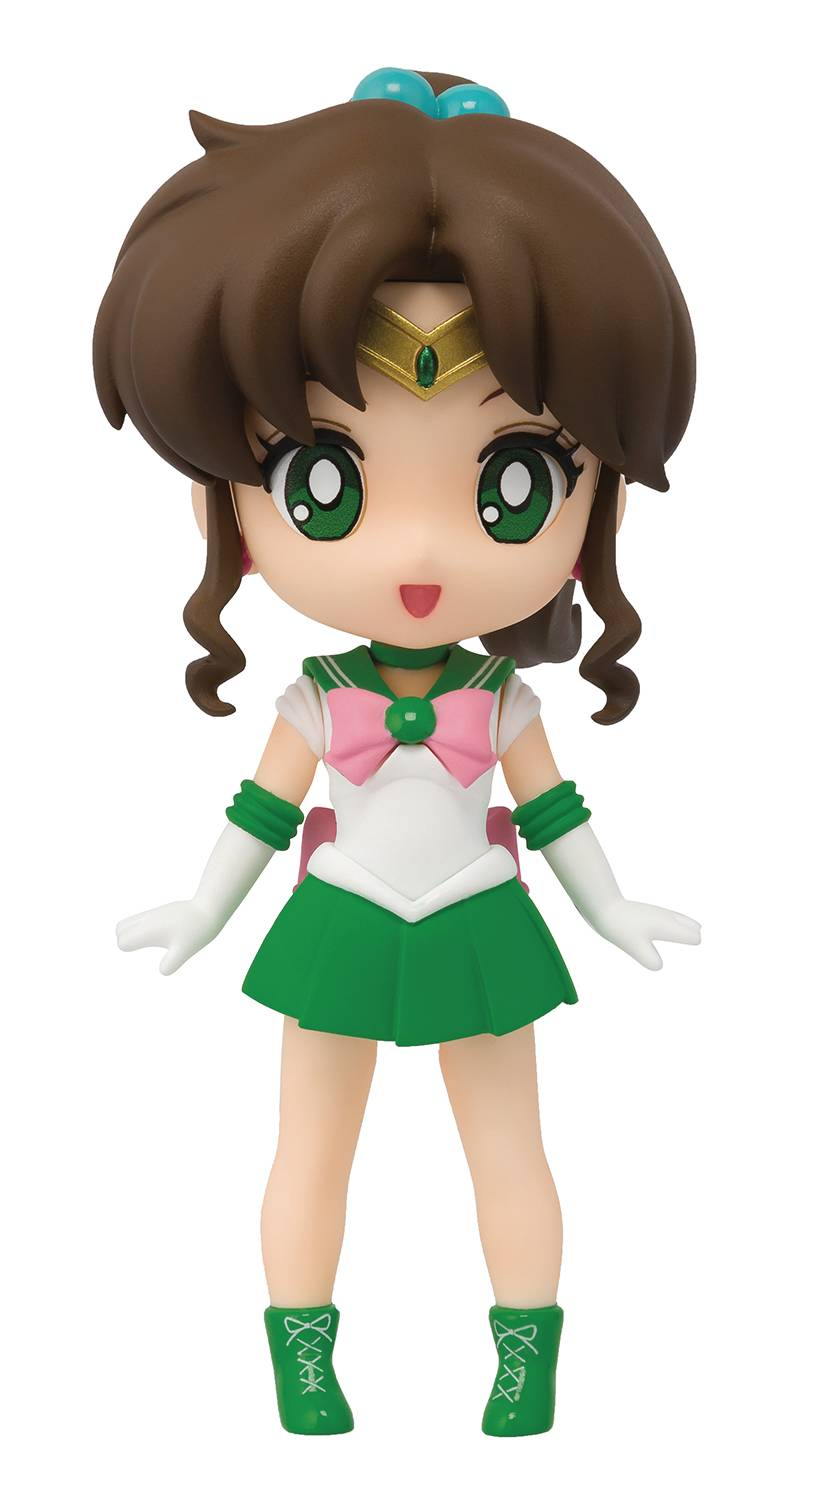 SAILOR MOON SAILOR JUPITER FIGUARTS MINI FIG